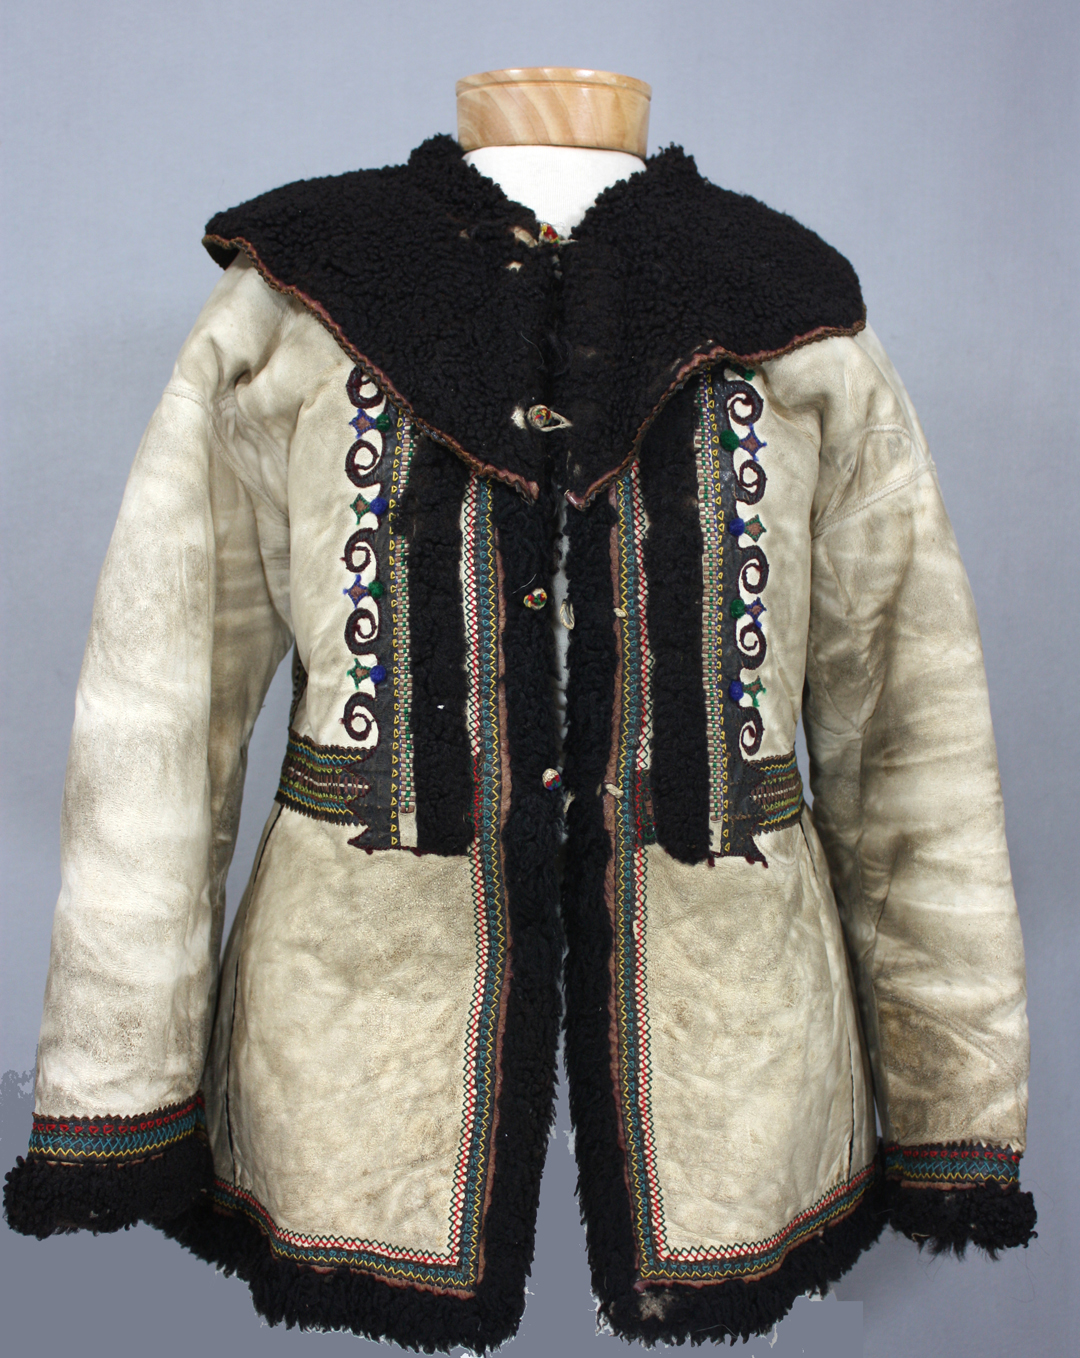 Kozhukh, Sheepskin outerwear from the Hnatiuk collection, 19th-early 20th Century. Textile.